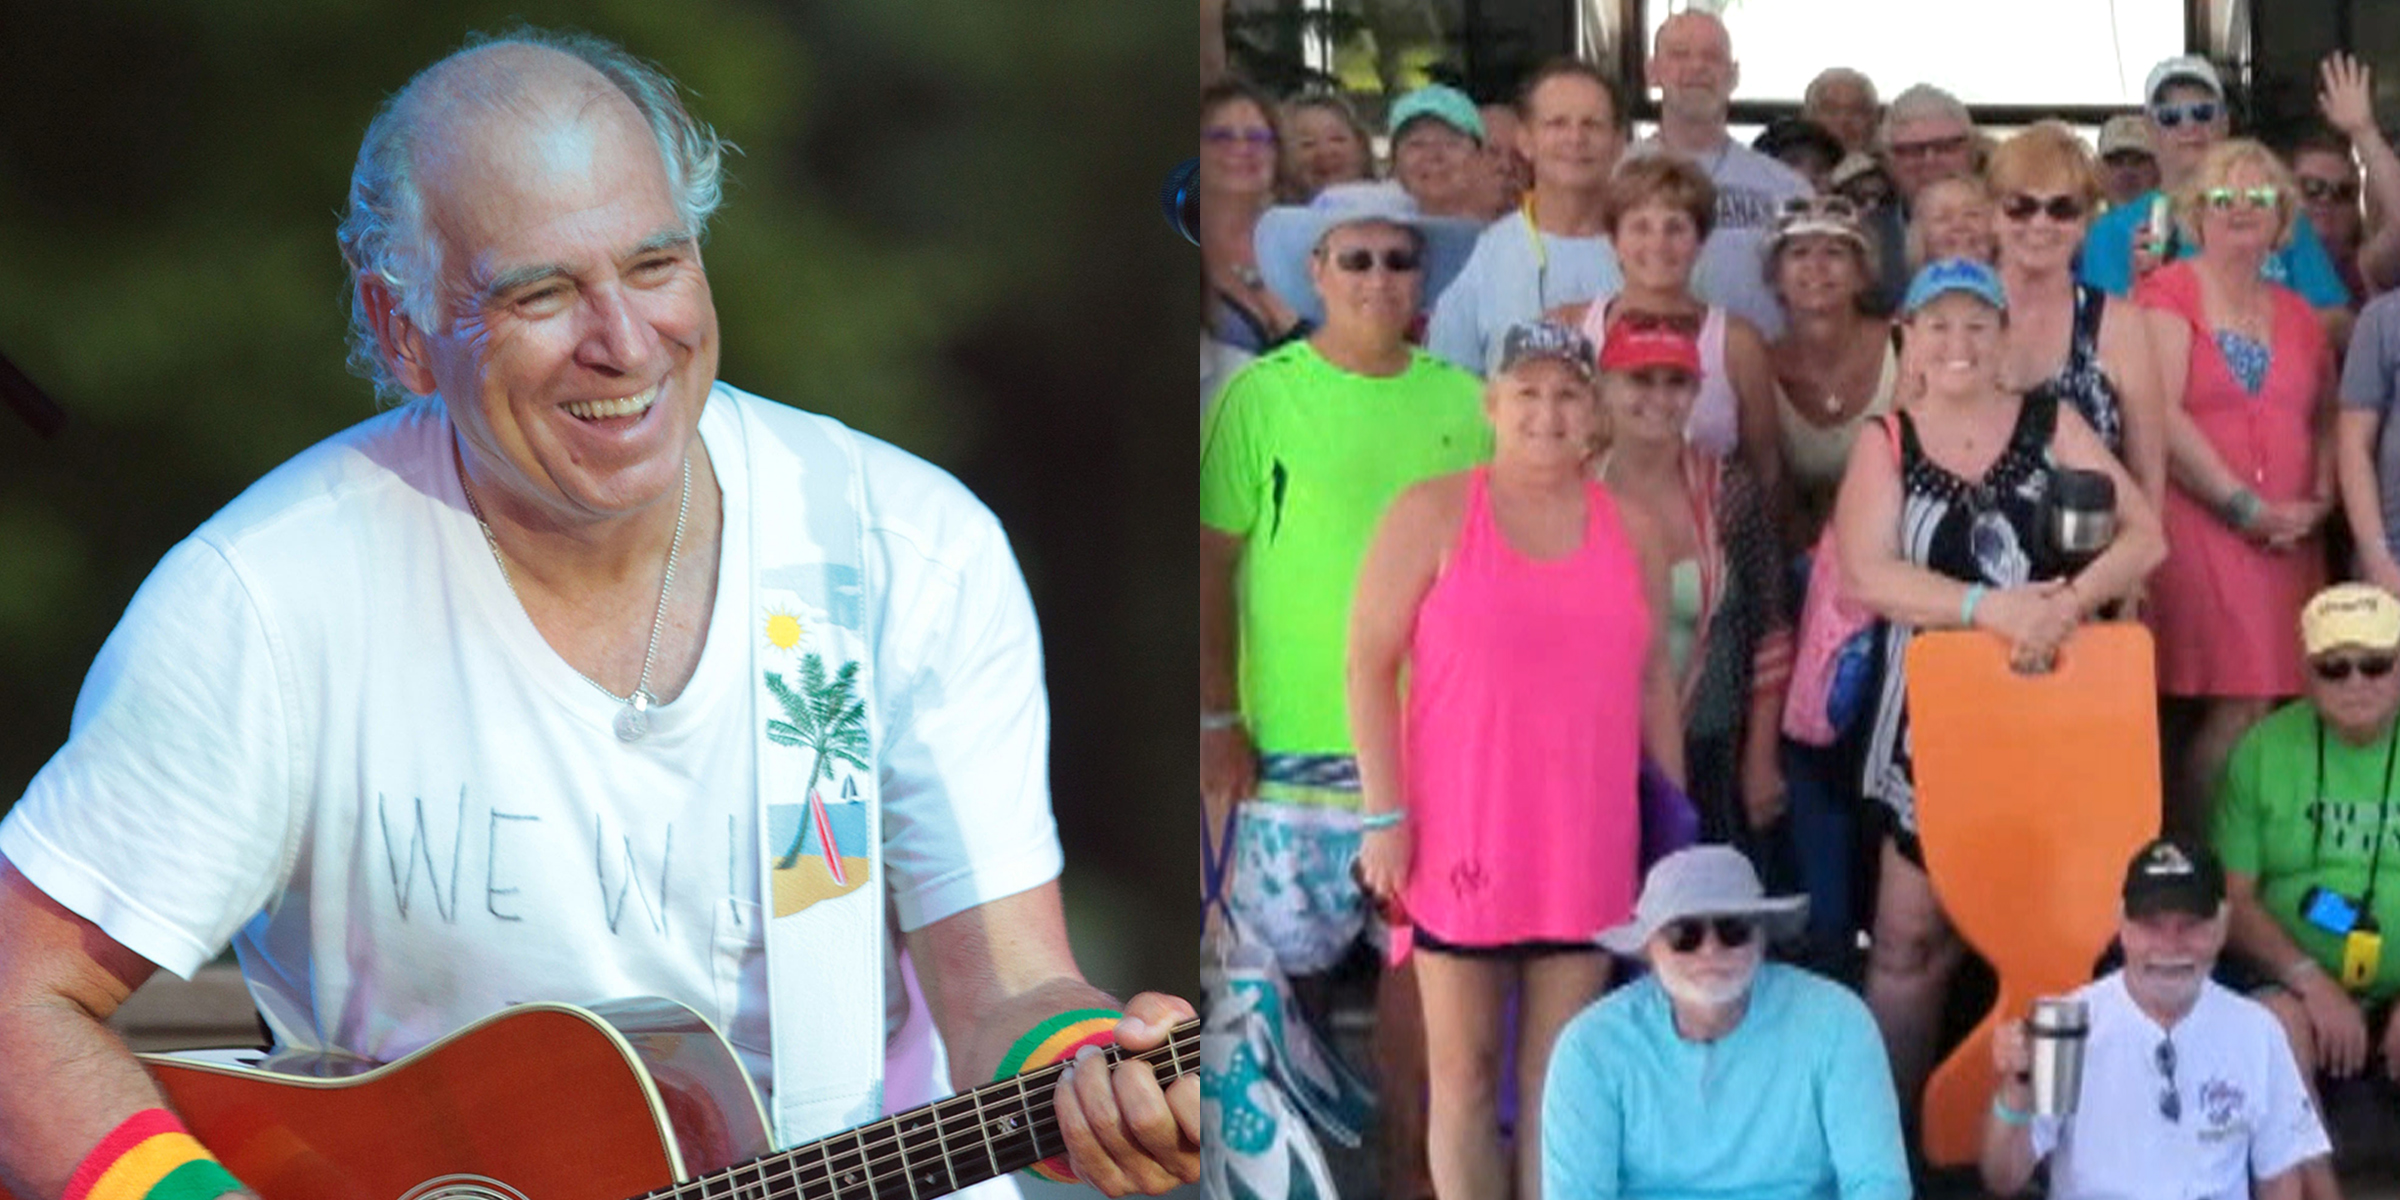 Jimmy Buffett fans say they got mysteriously sick during Dominican Republic trip